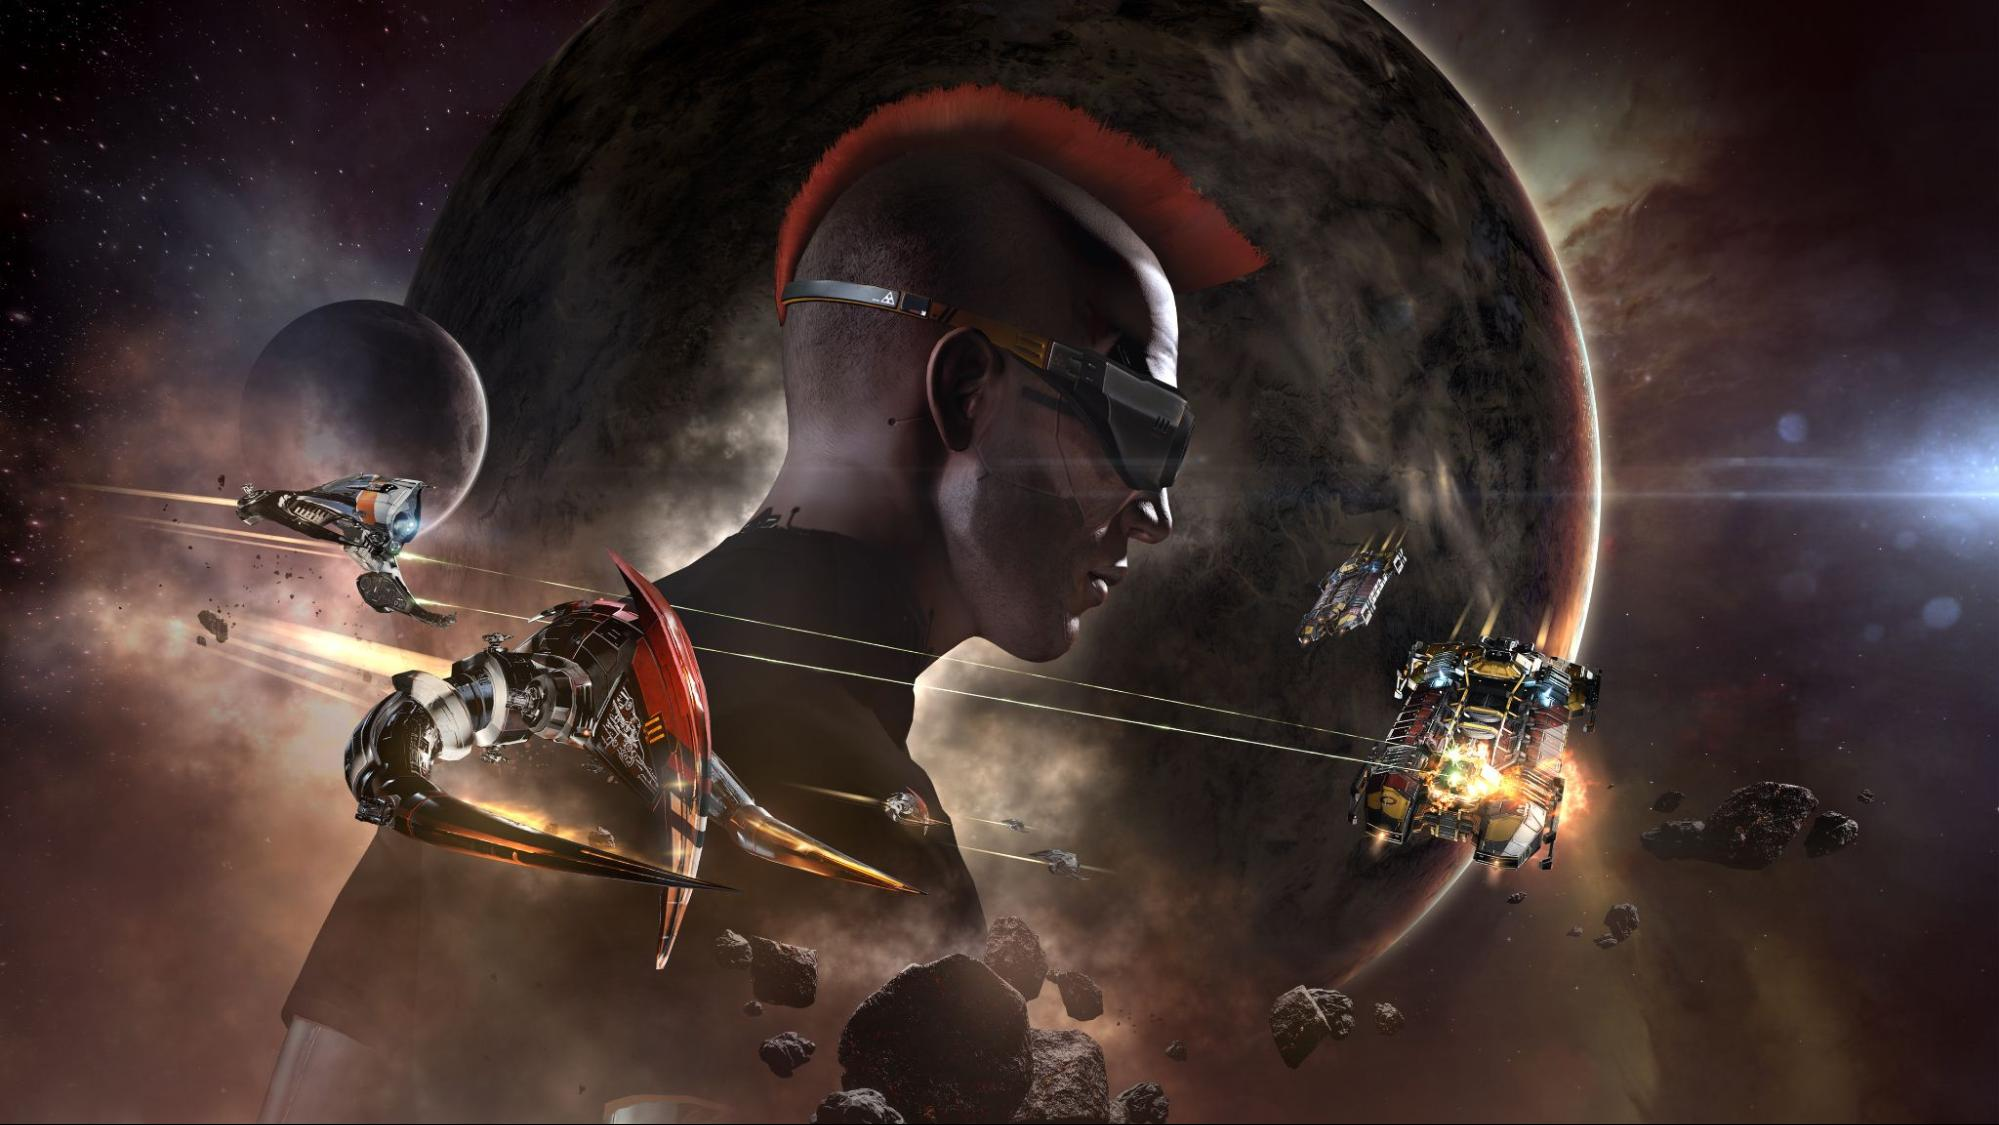 A masculine character with a mohawk and goggles is superimposed over a planet and its moon in the background. In the foreground, ships are battling with one another, from right to left.